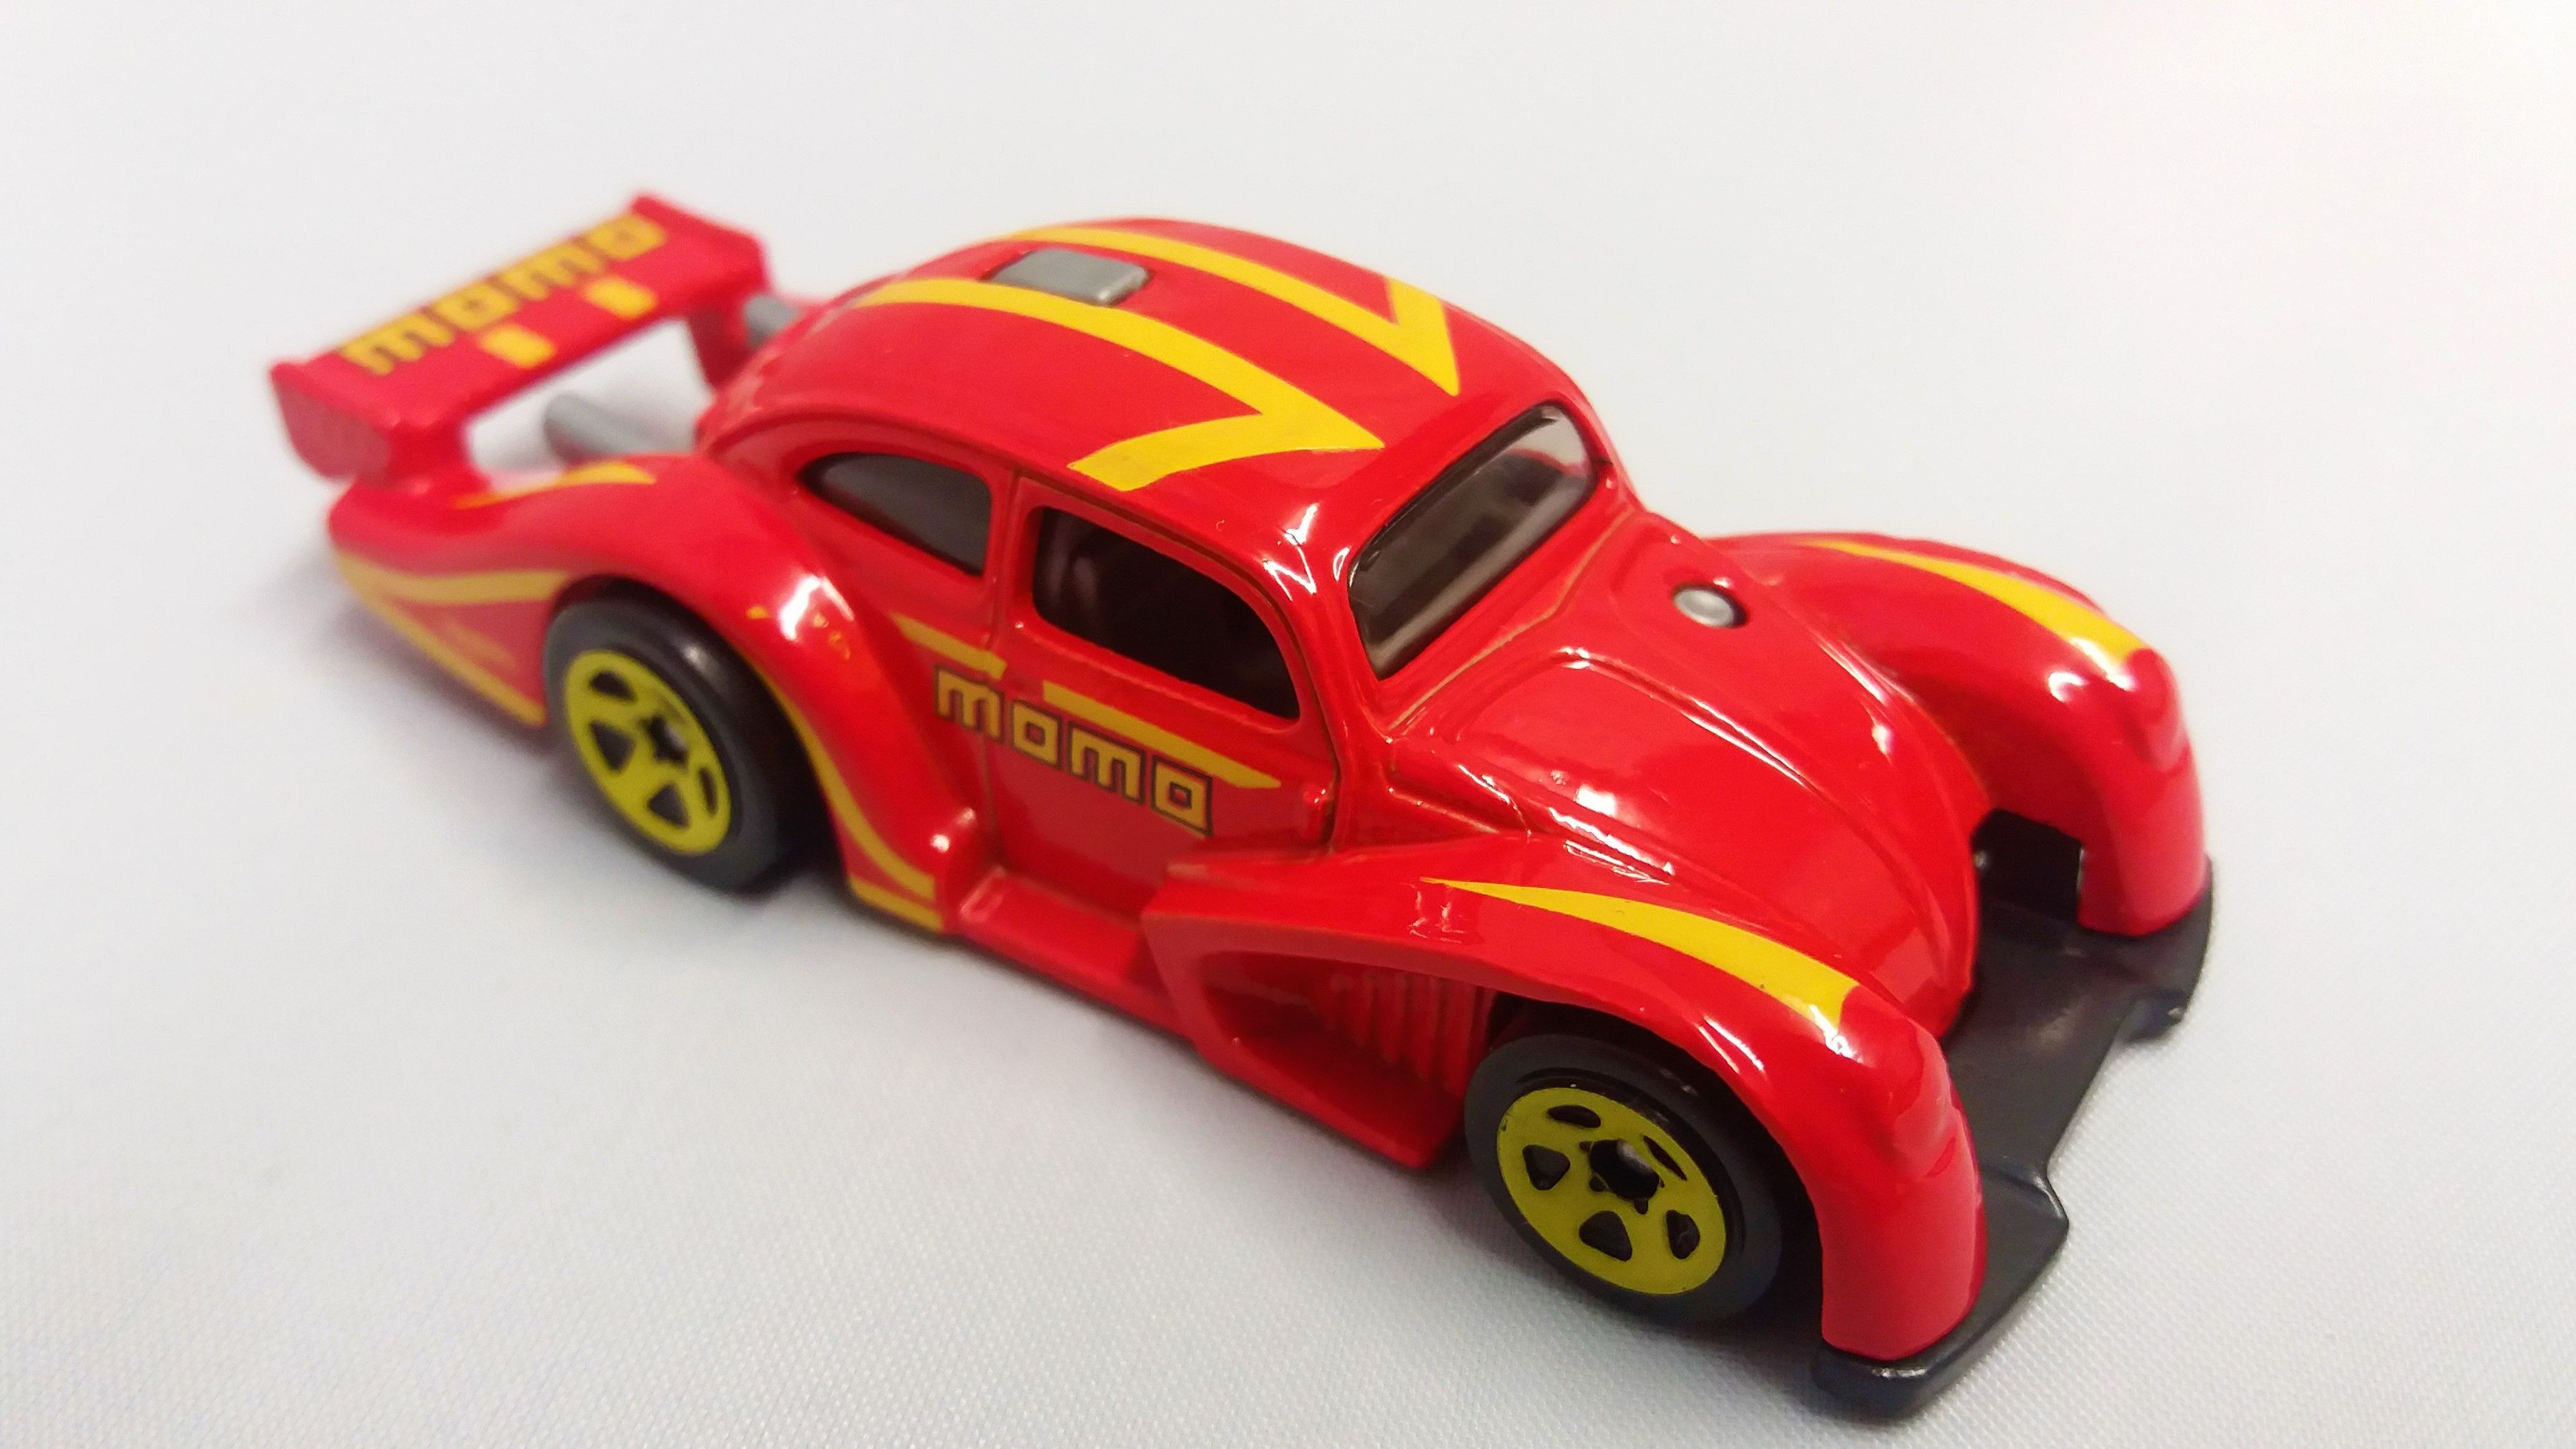 Ultimate hot wheels lotus project m250 closer look ultimate hot wheels pinterest lotus and wheels